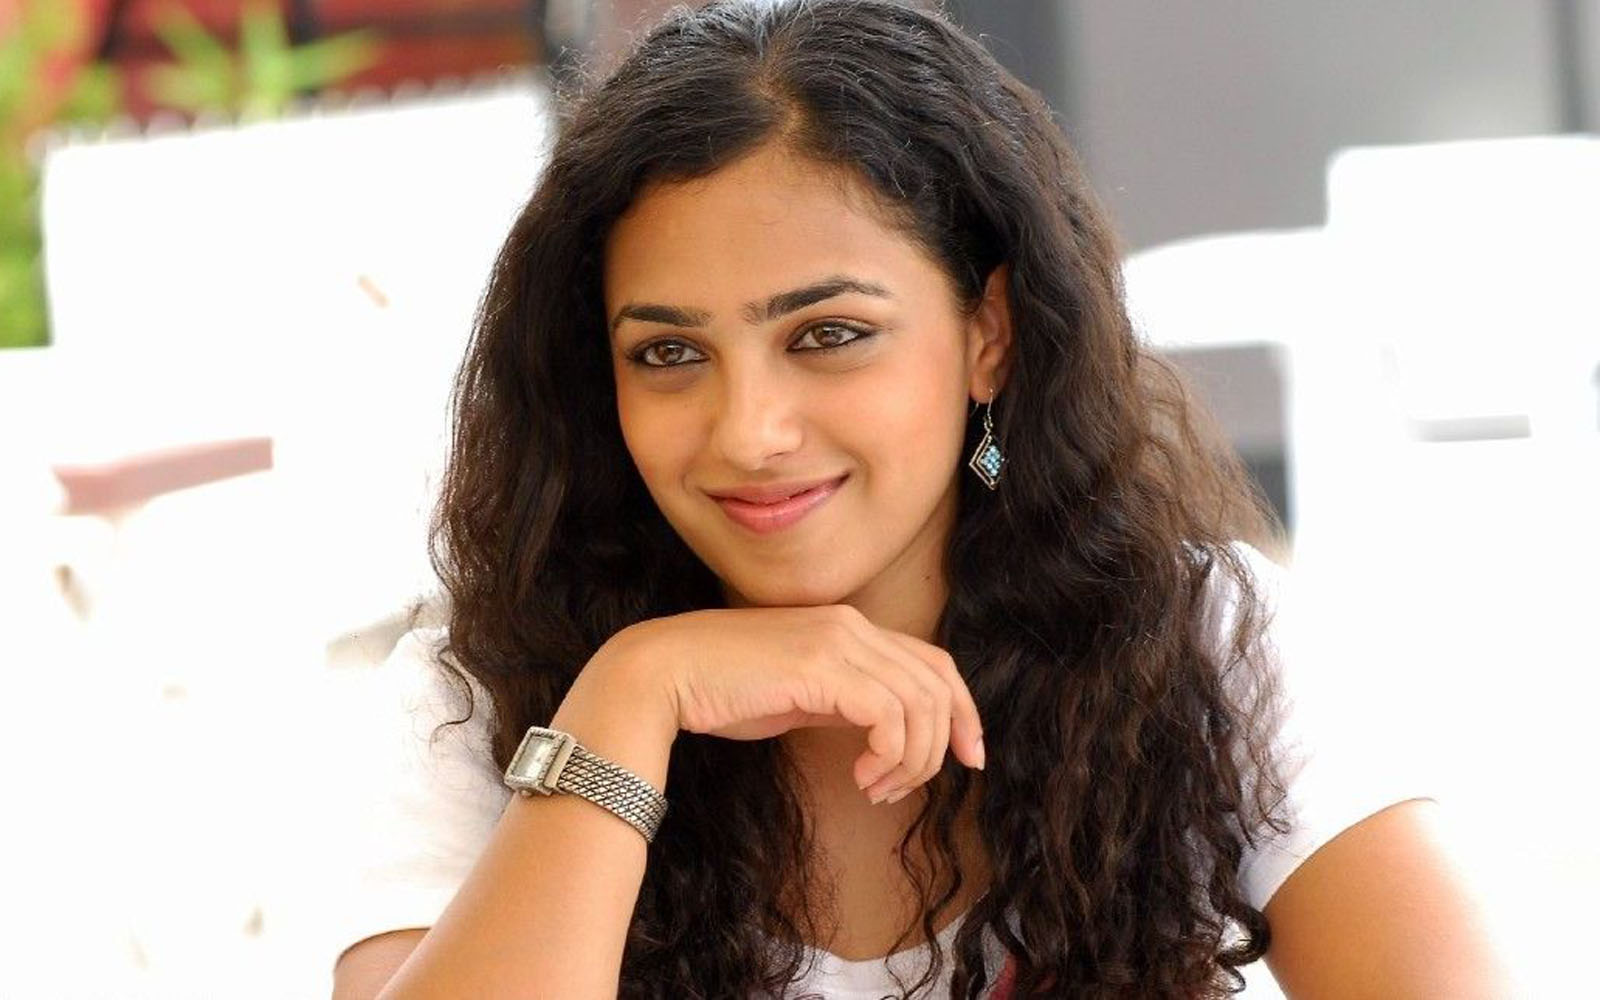 Nithya Menon Wallpapers in jpg format for free download